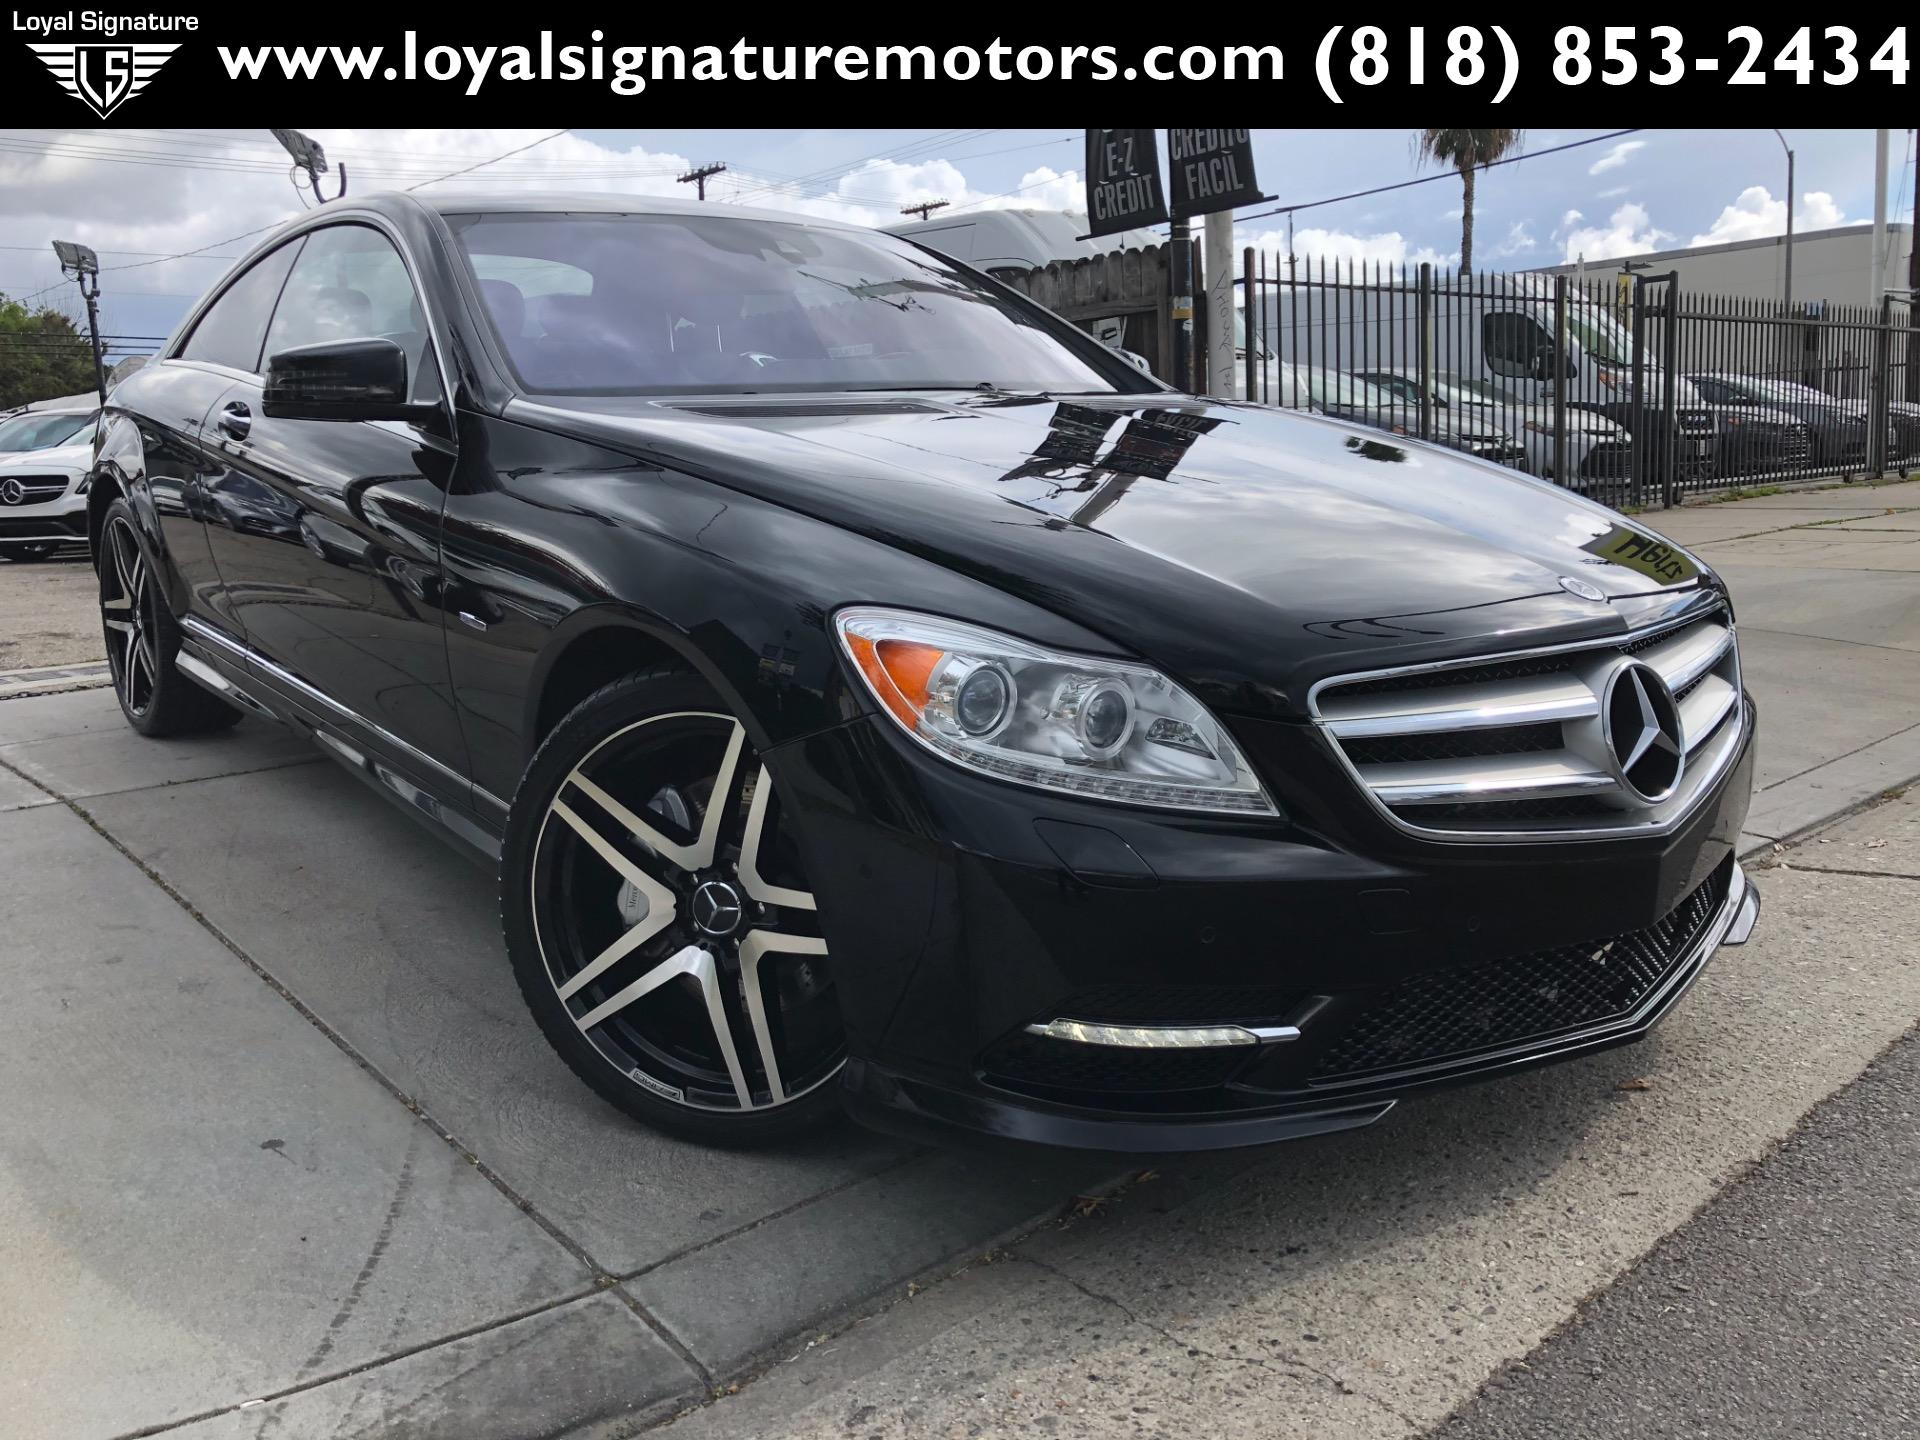 Used 2012 Mercedes-Benz CL-Class CL 550 4MATIC | Van Nuys, CA